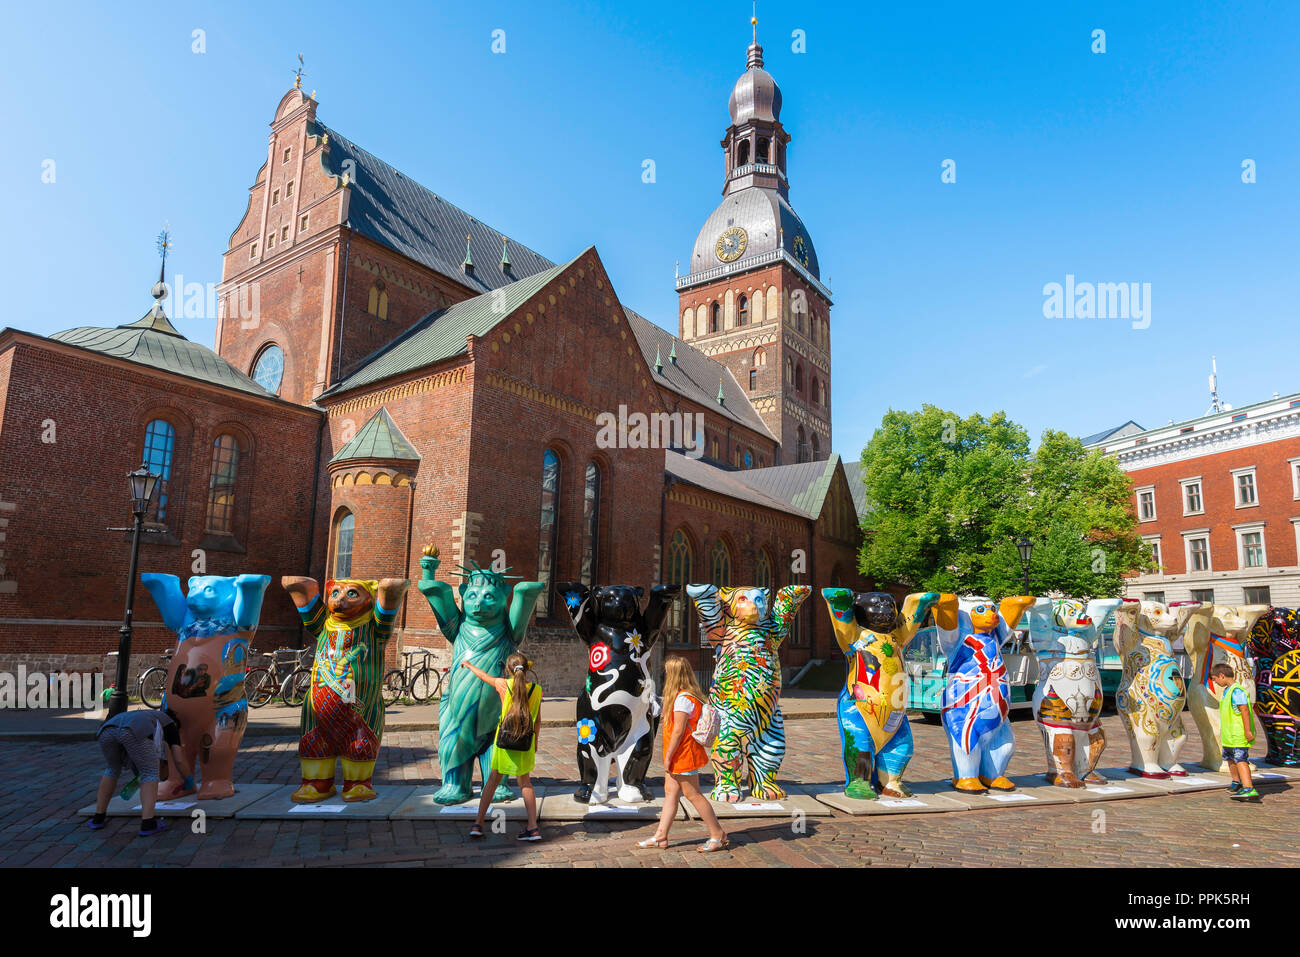 Riga Cathedral Square, against the backdrop of the Cathedral children view the United Buddy Bears exhibition sited in Riga Cathedral Square, Latvia. - Stock Image